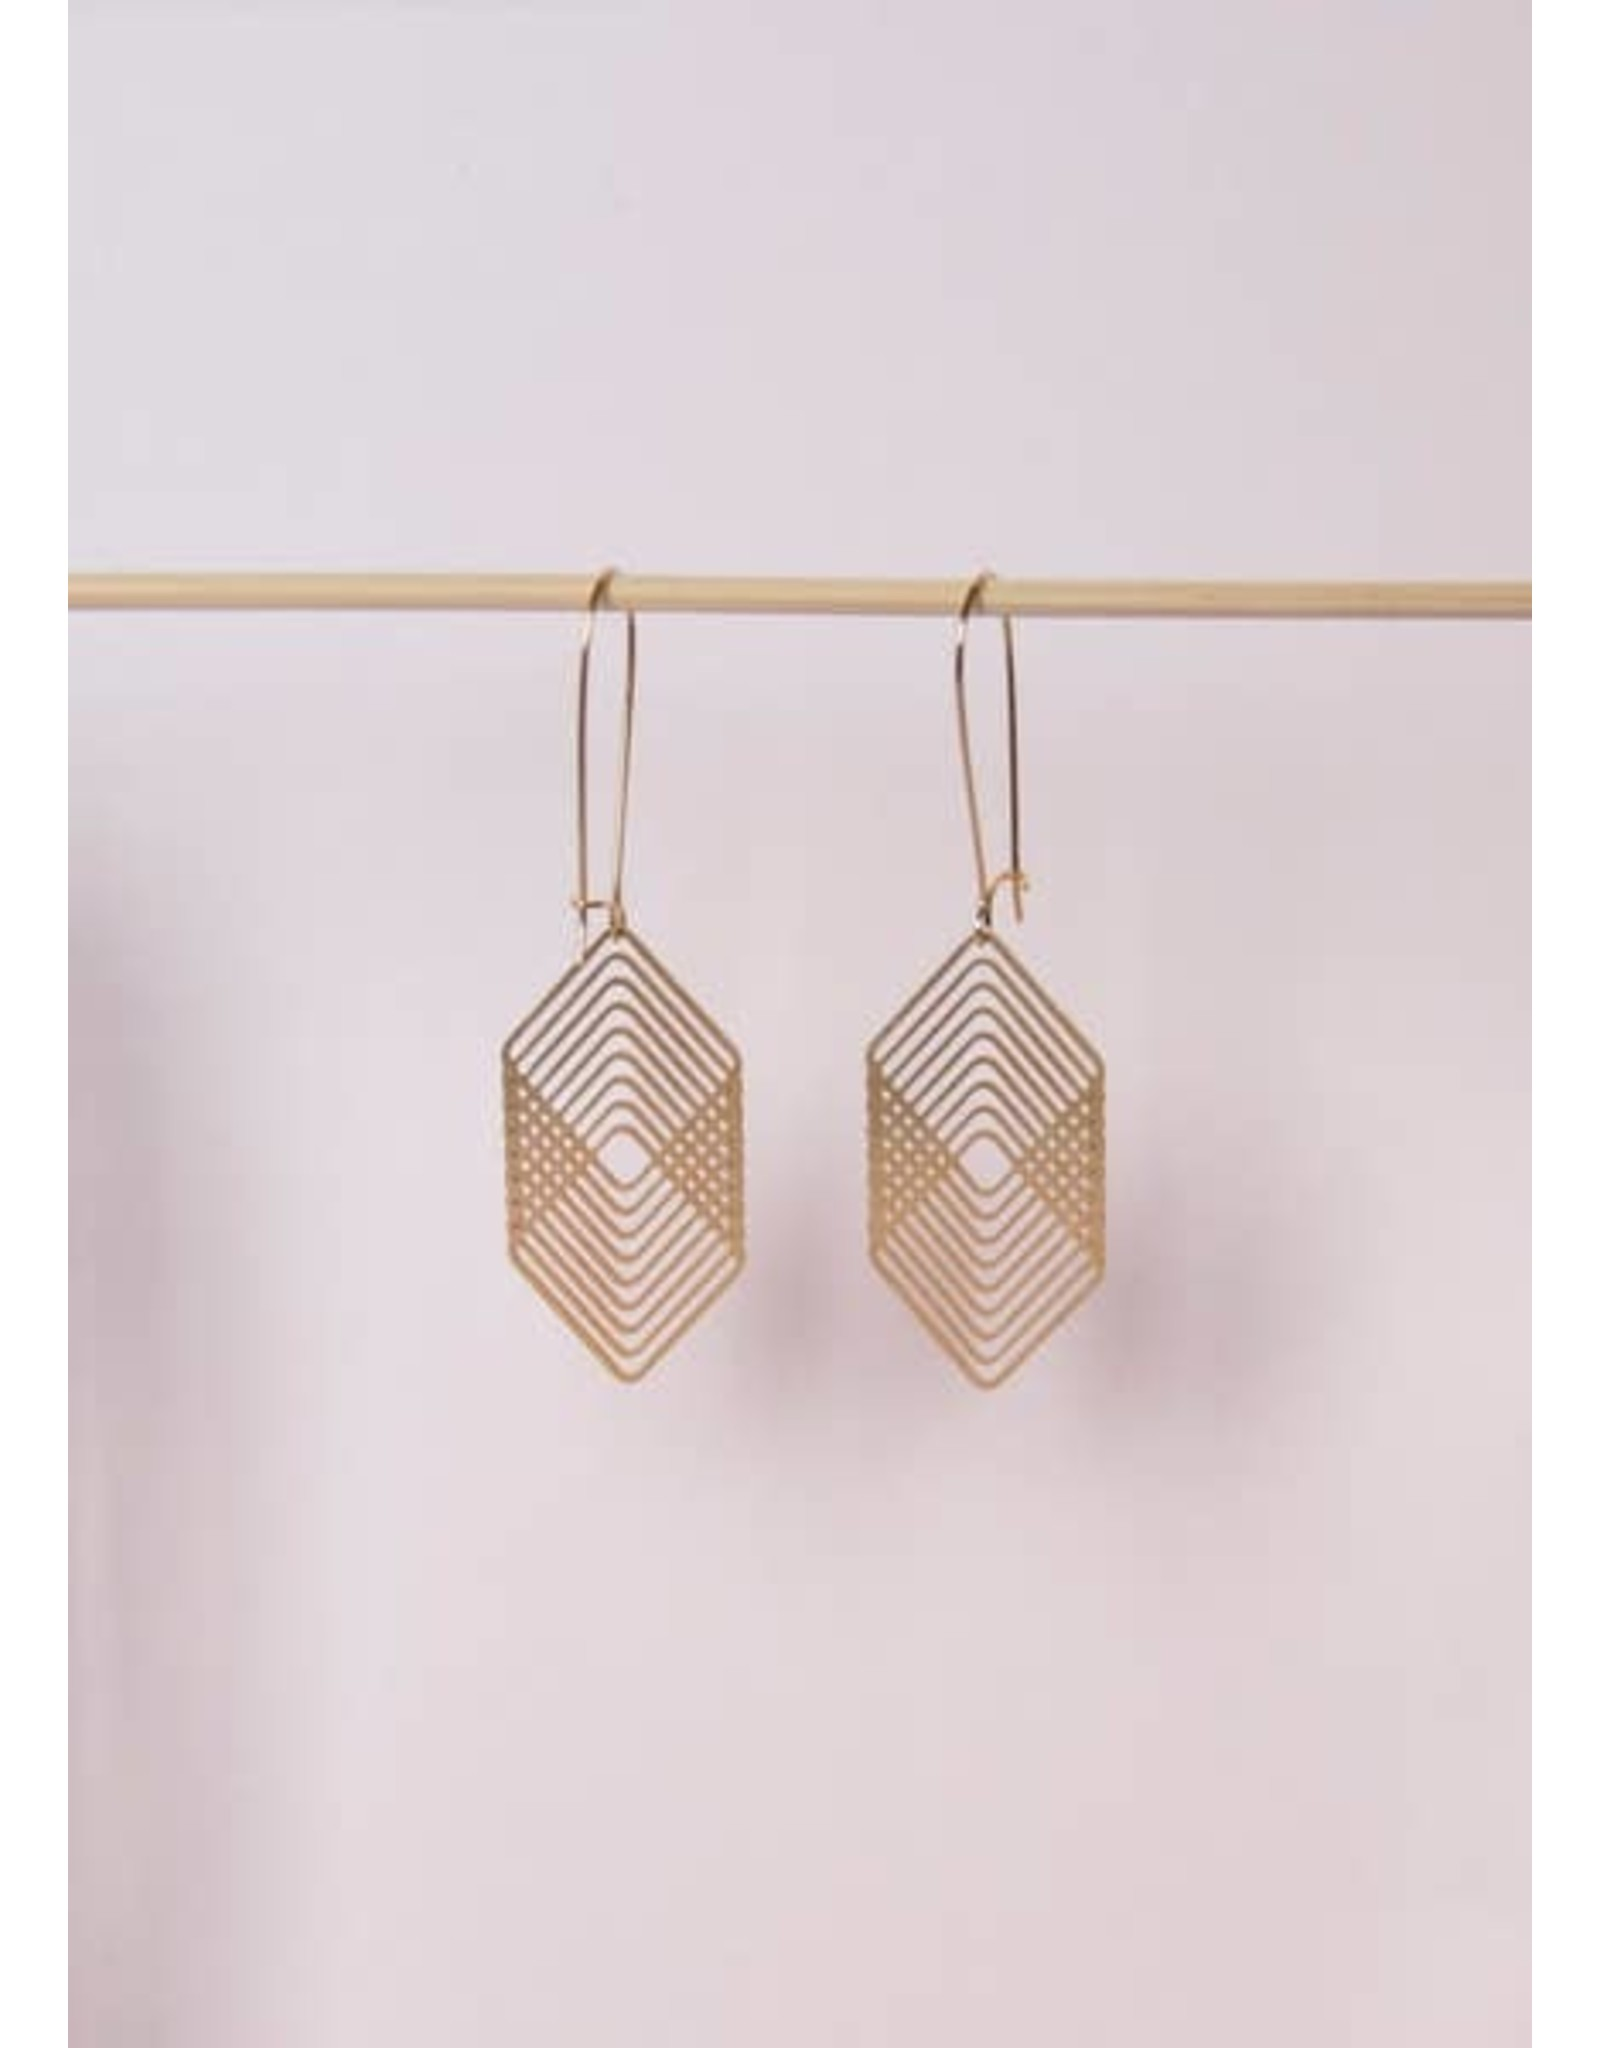 TLJ Overlapping Squares Earrings: Gold